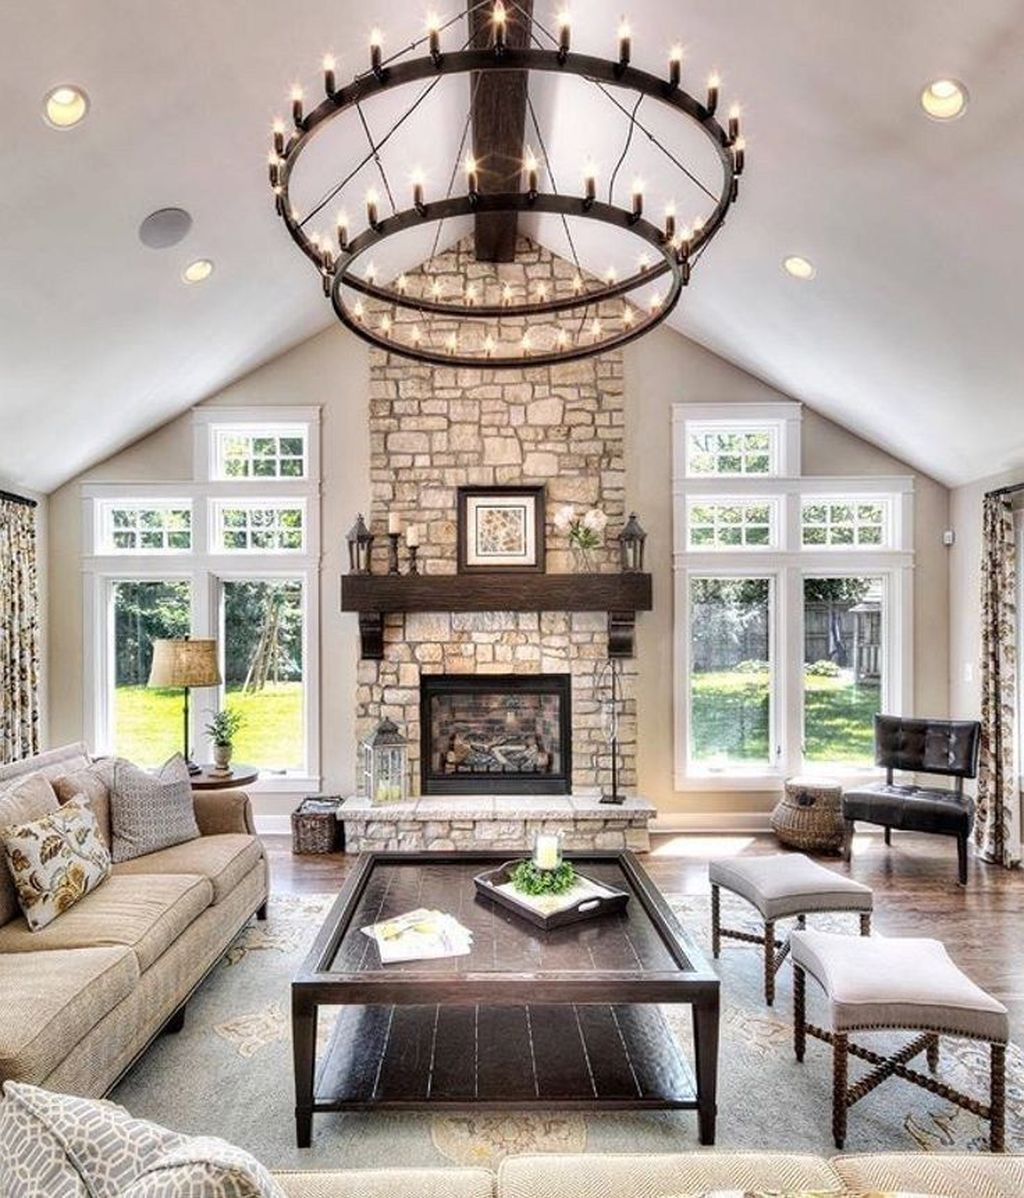 Admirable Farmhouse Living Room Decor Ideas 24